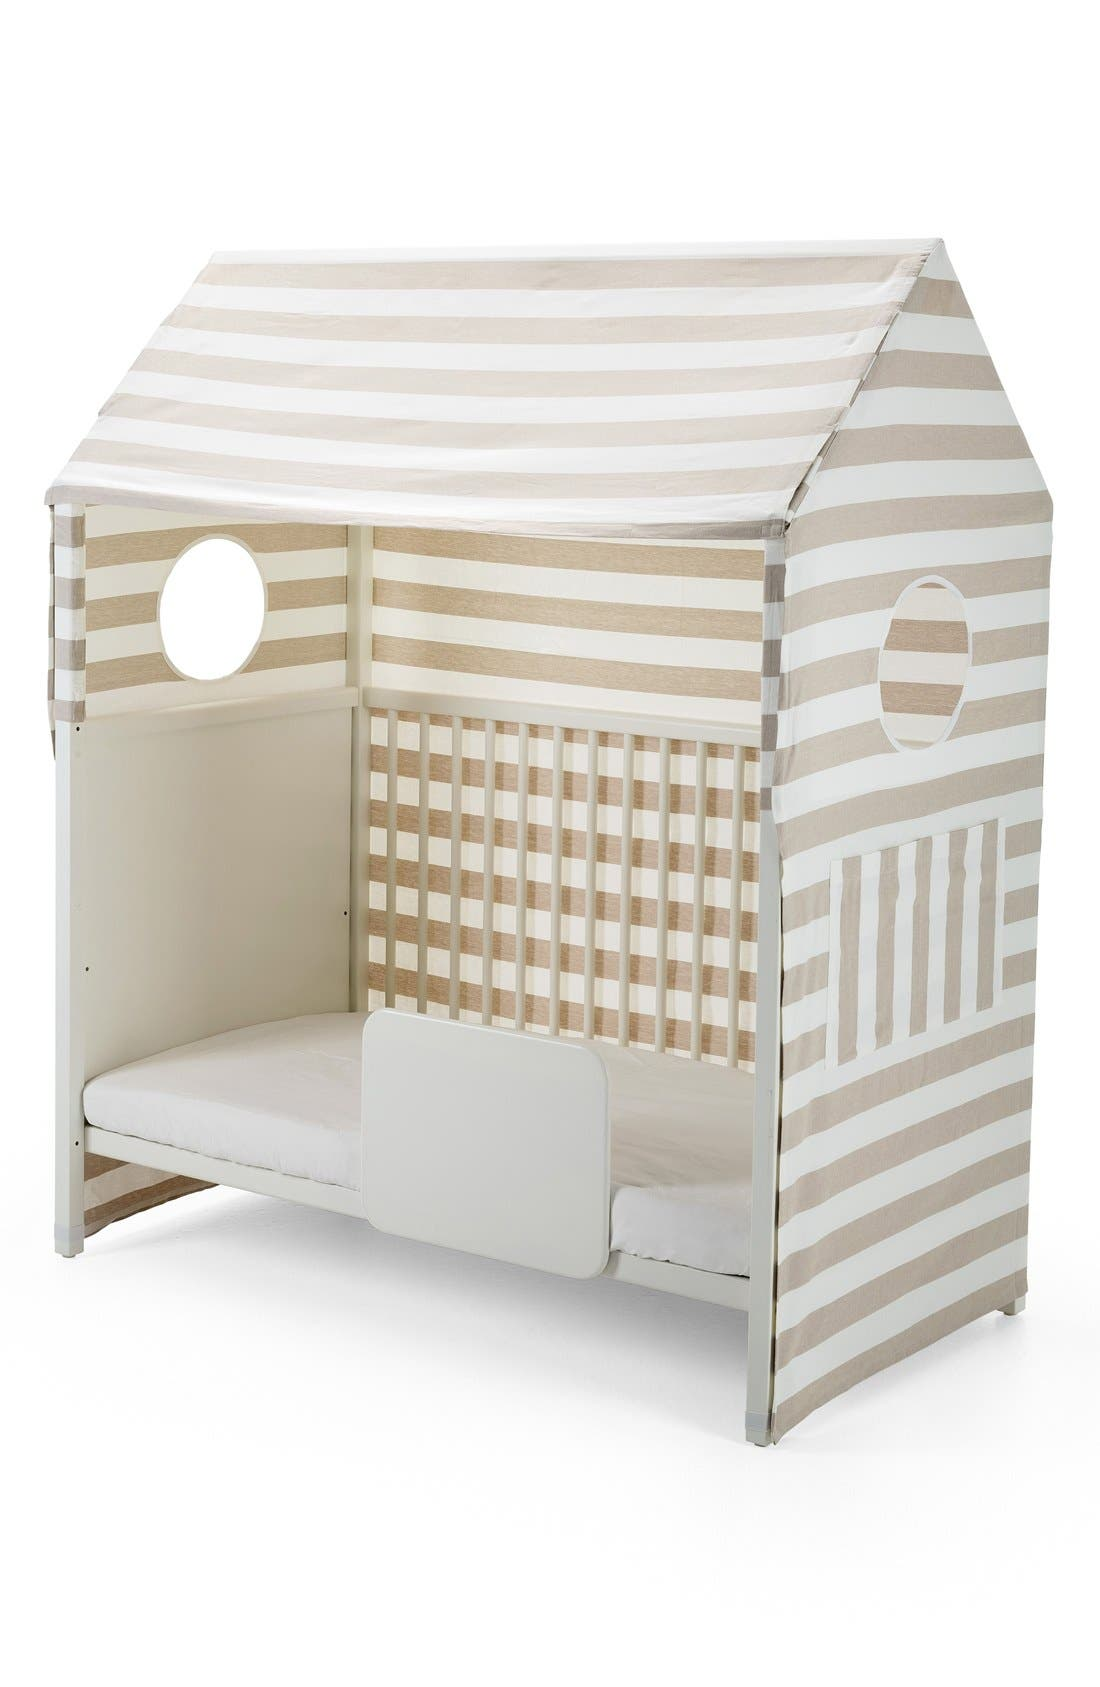 STOKKE 'Home<sup>™</sup>' Toddler Bed Tent, Main, color, 270